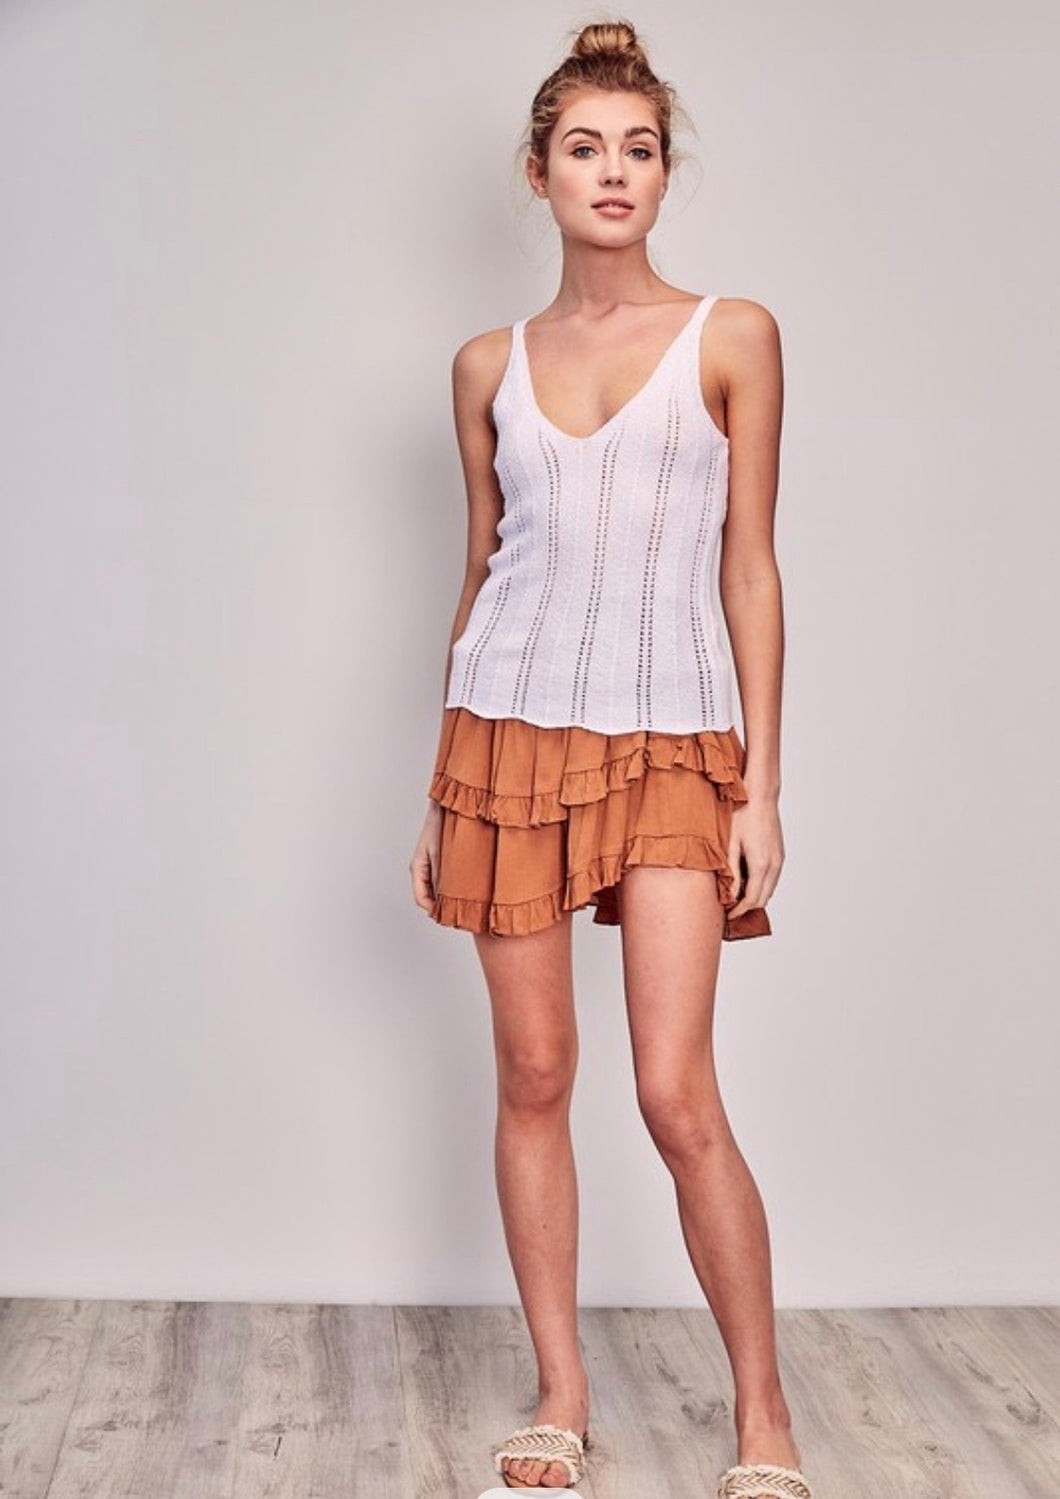 Knitted white tank with racer back by mustard seed